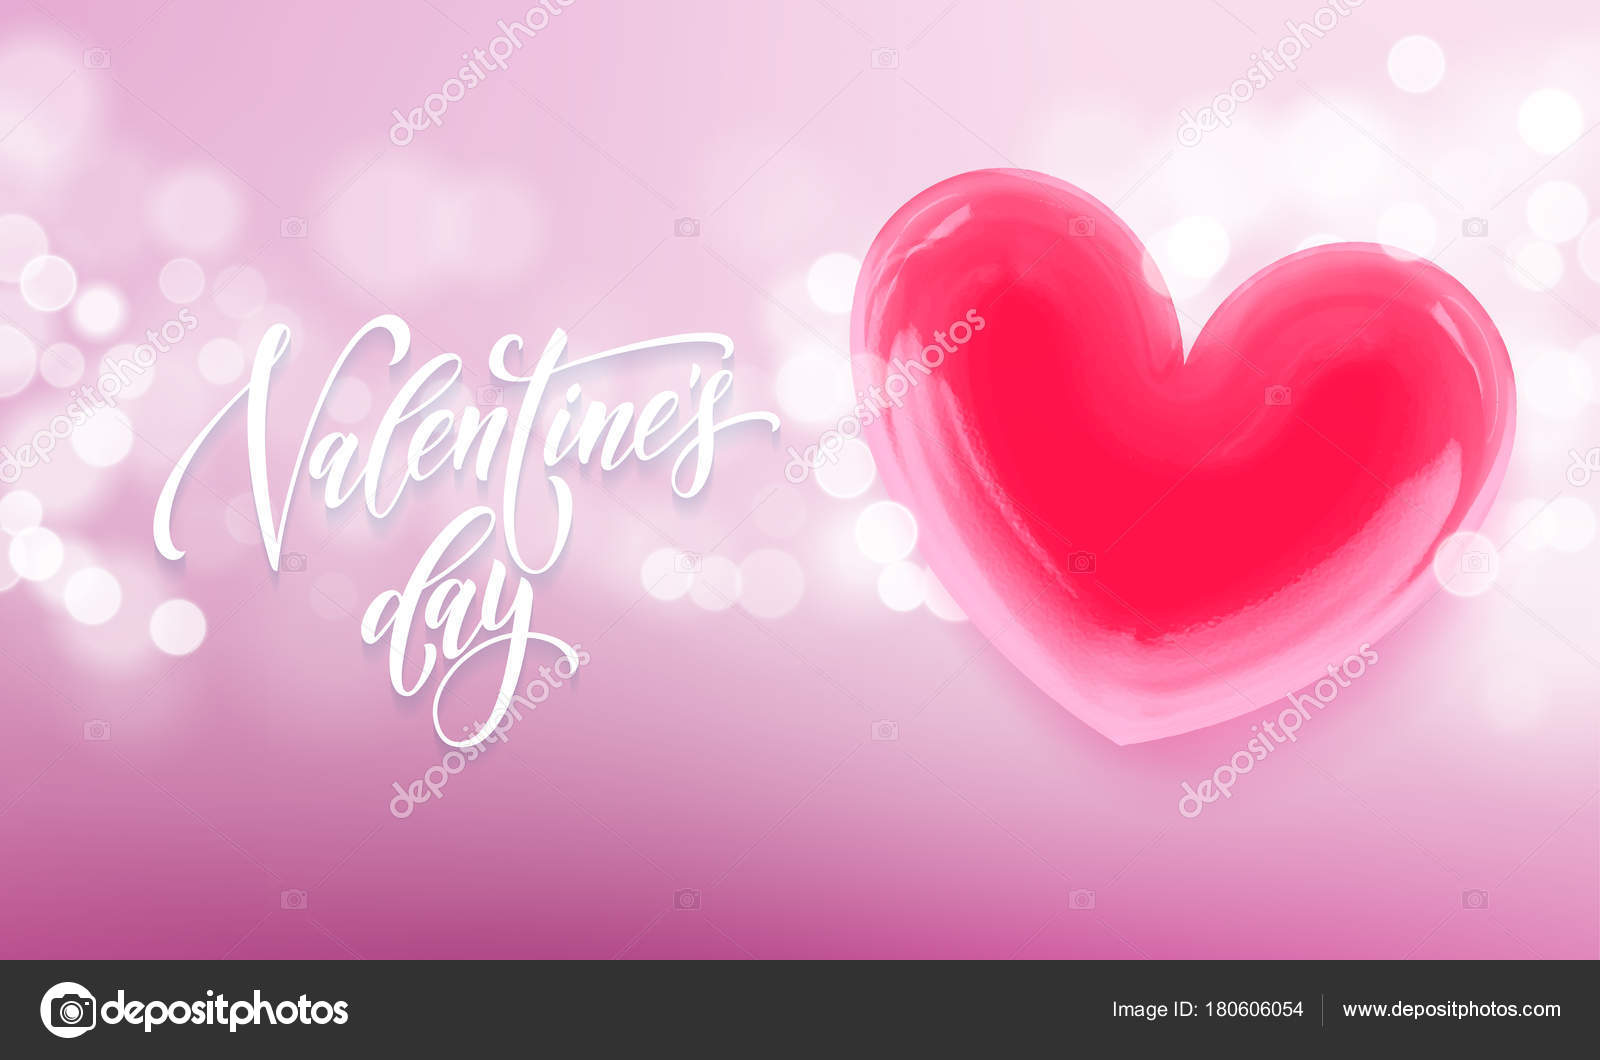 Valentines day greeting card of valentine red crystal heart on valentines day greeting card of valentine red crystal heart on pink light shine background vector kristyandbryce Image collections